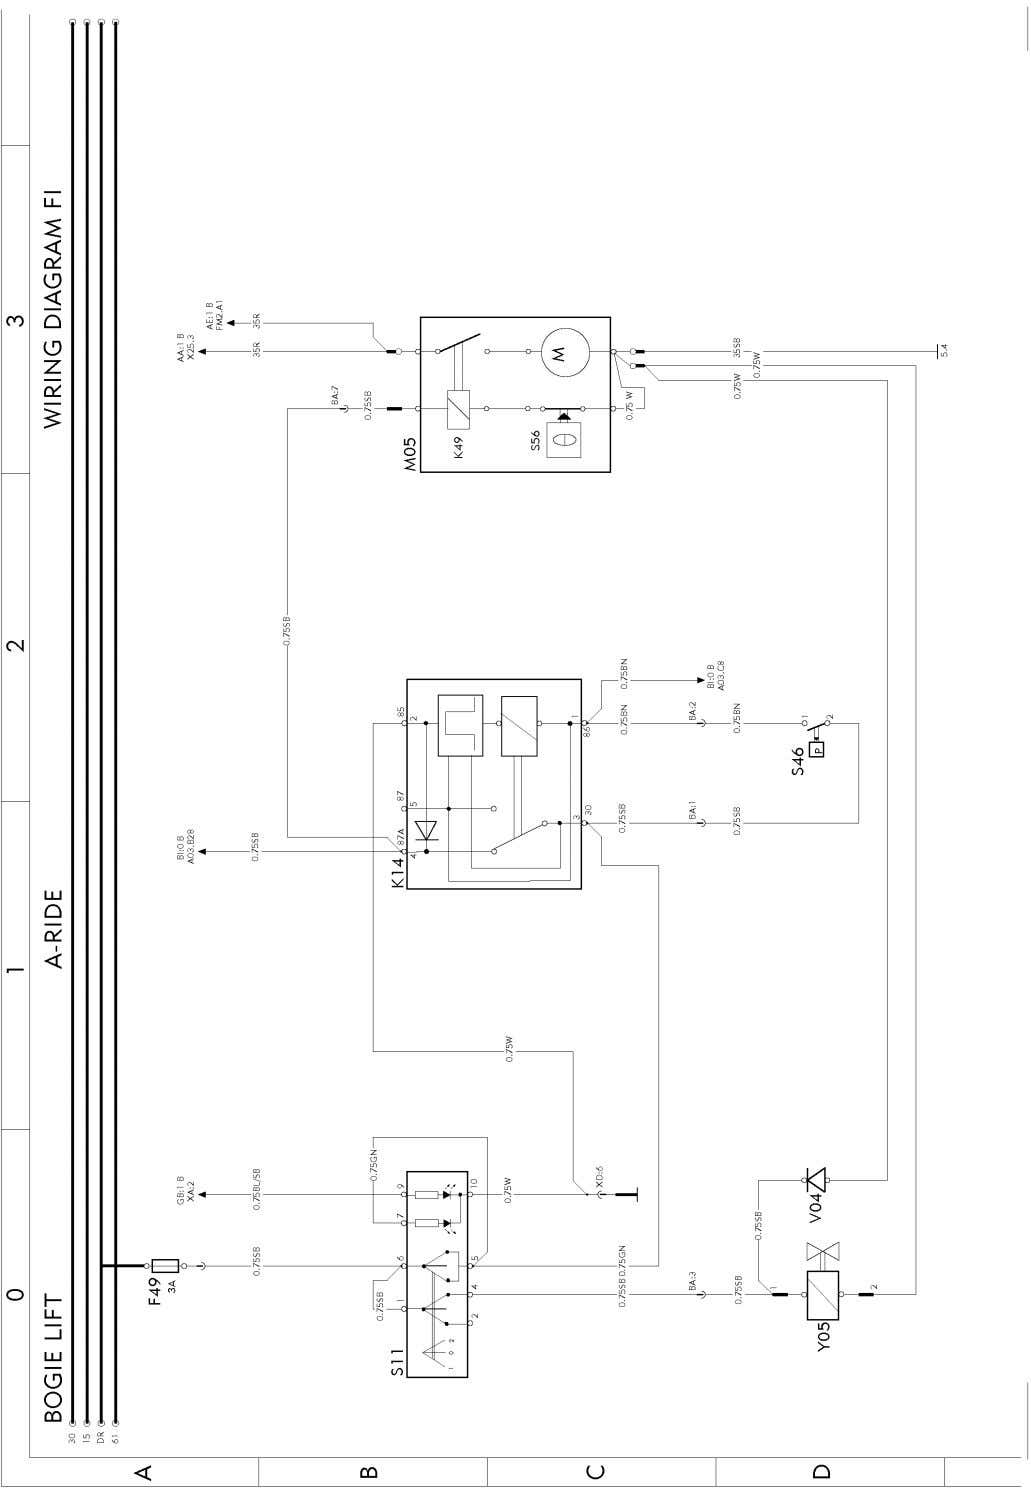 T3021449 Wiring diagram Page 51 (298)